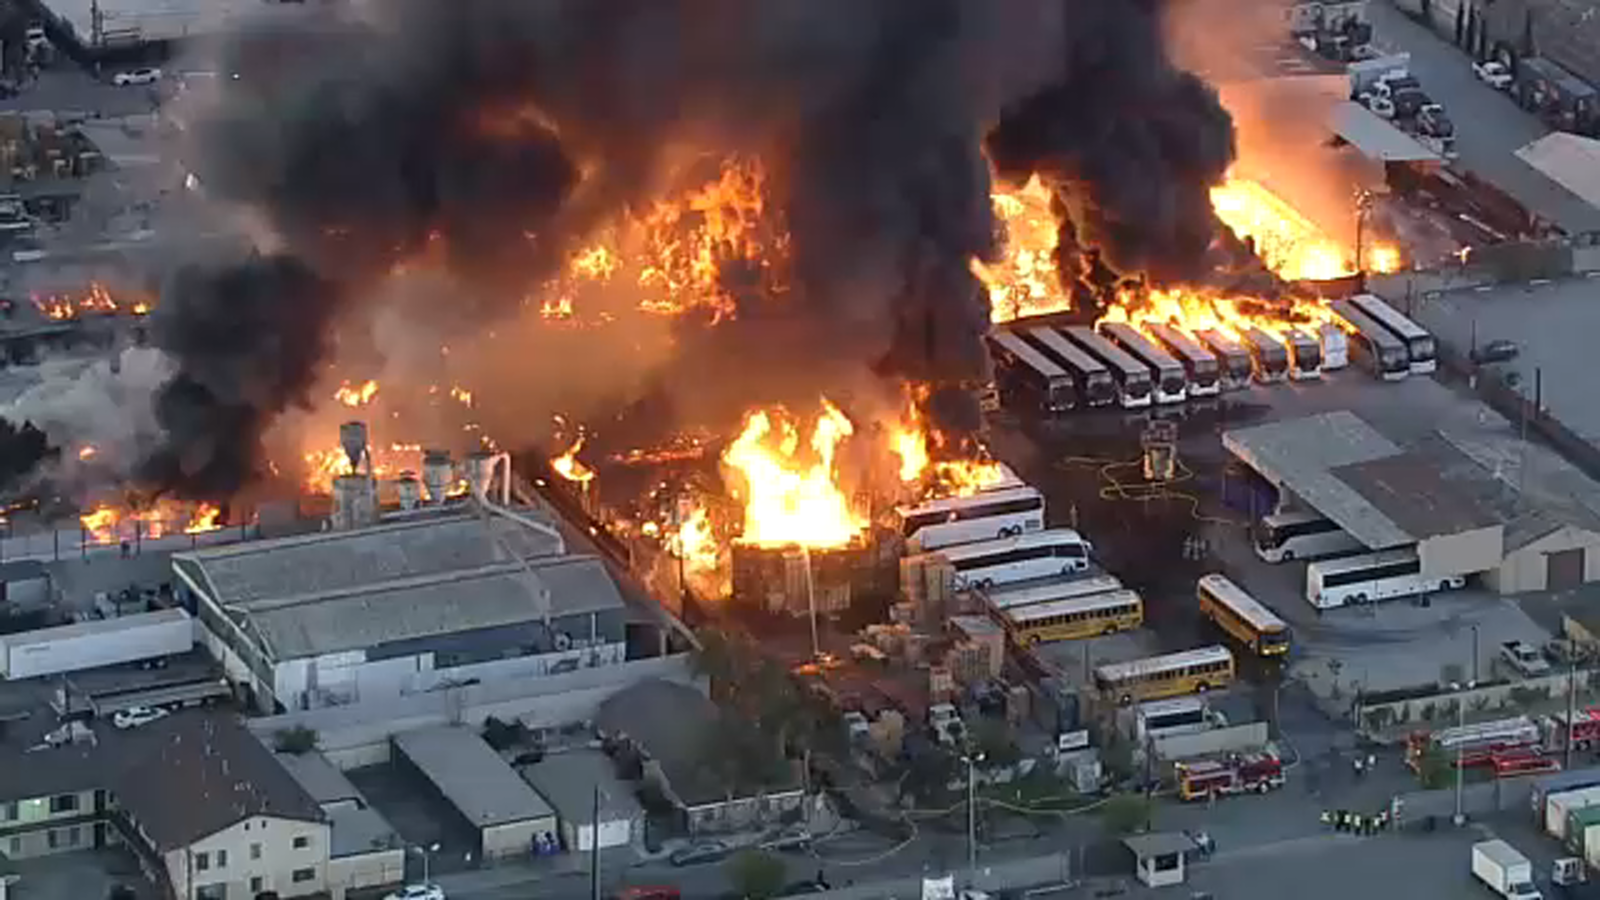 A massive fire in an industrial area of Compton engulfed several structures and buses, sending a thick plume of smoke into the sky Friday morning.